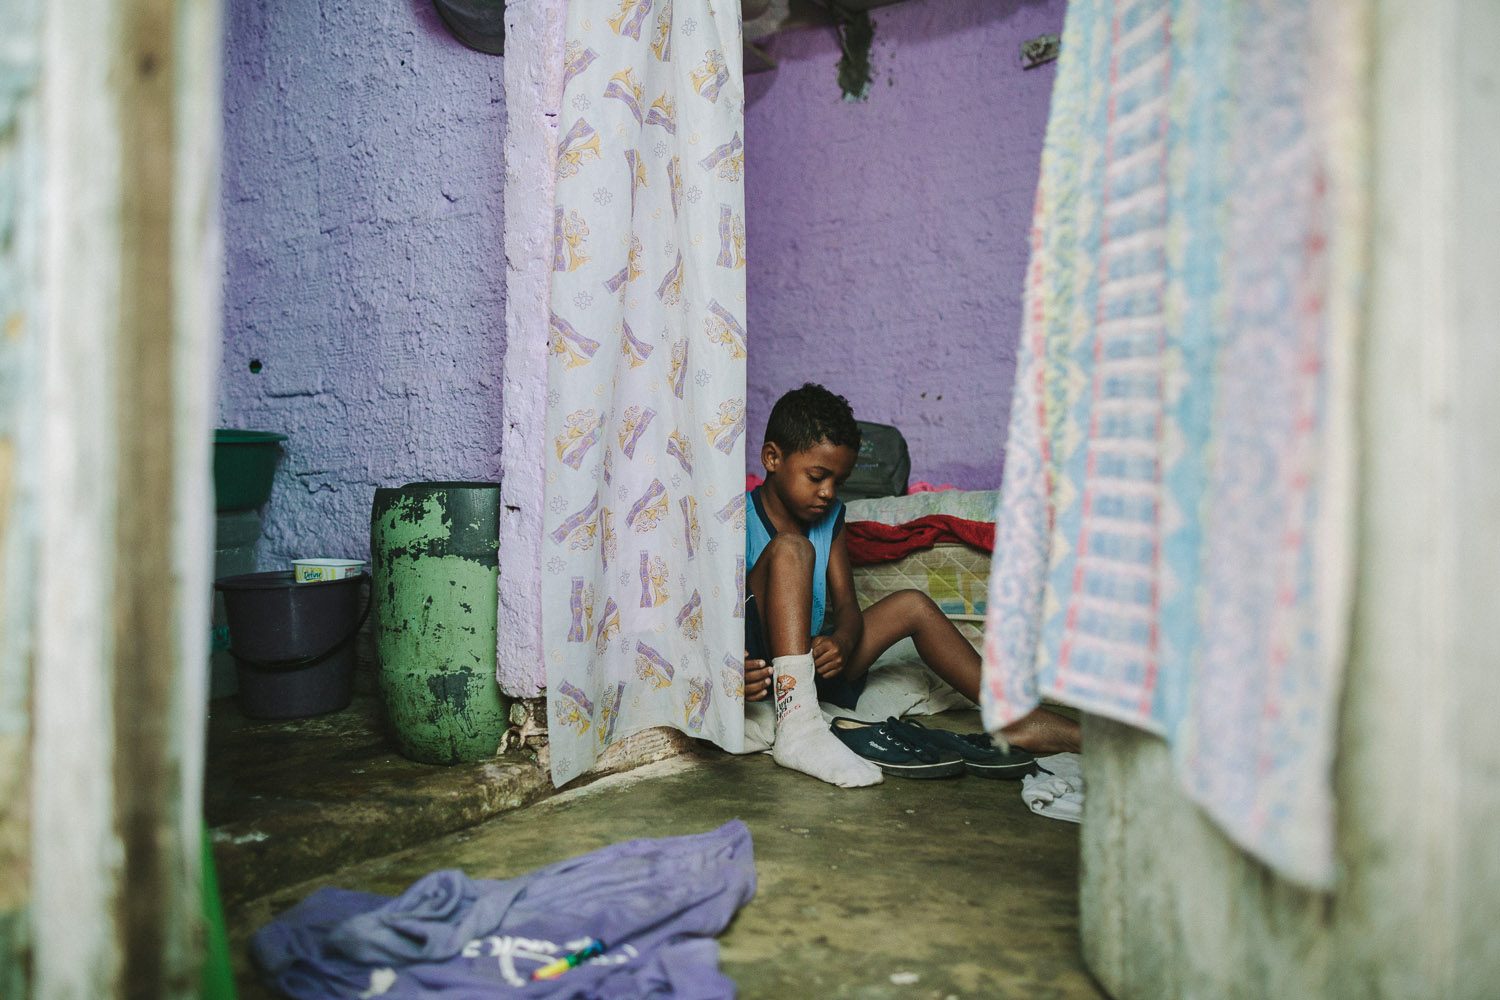 Emidio's entire house (housing 4 people---soon to be 5) is perhaps no larger than 8 feet by 10 feet. This is Emidio's morning routine before heading to classes at the Compassion Center.